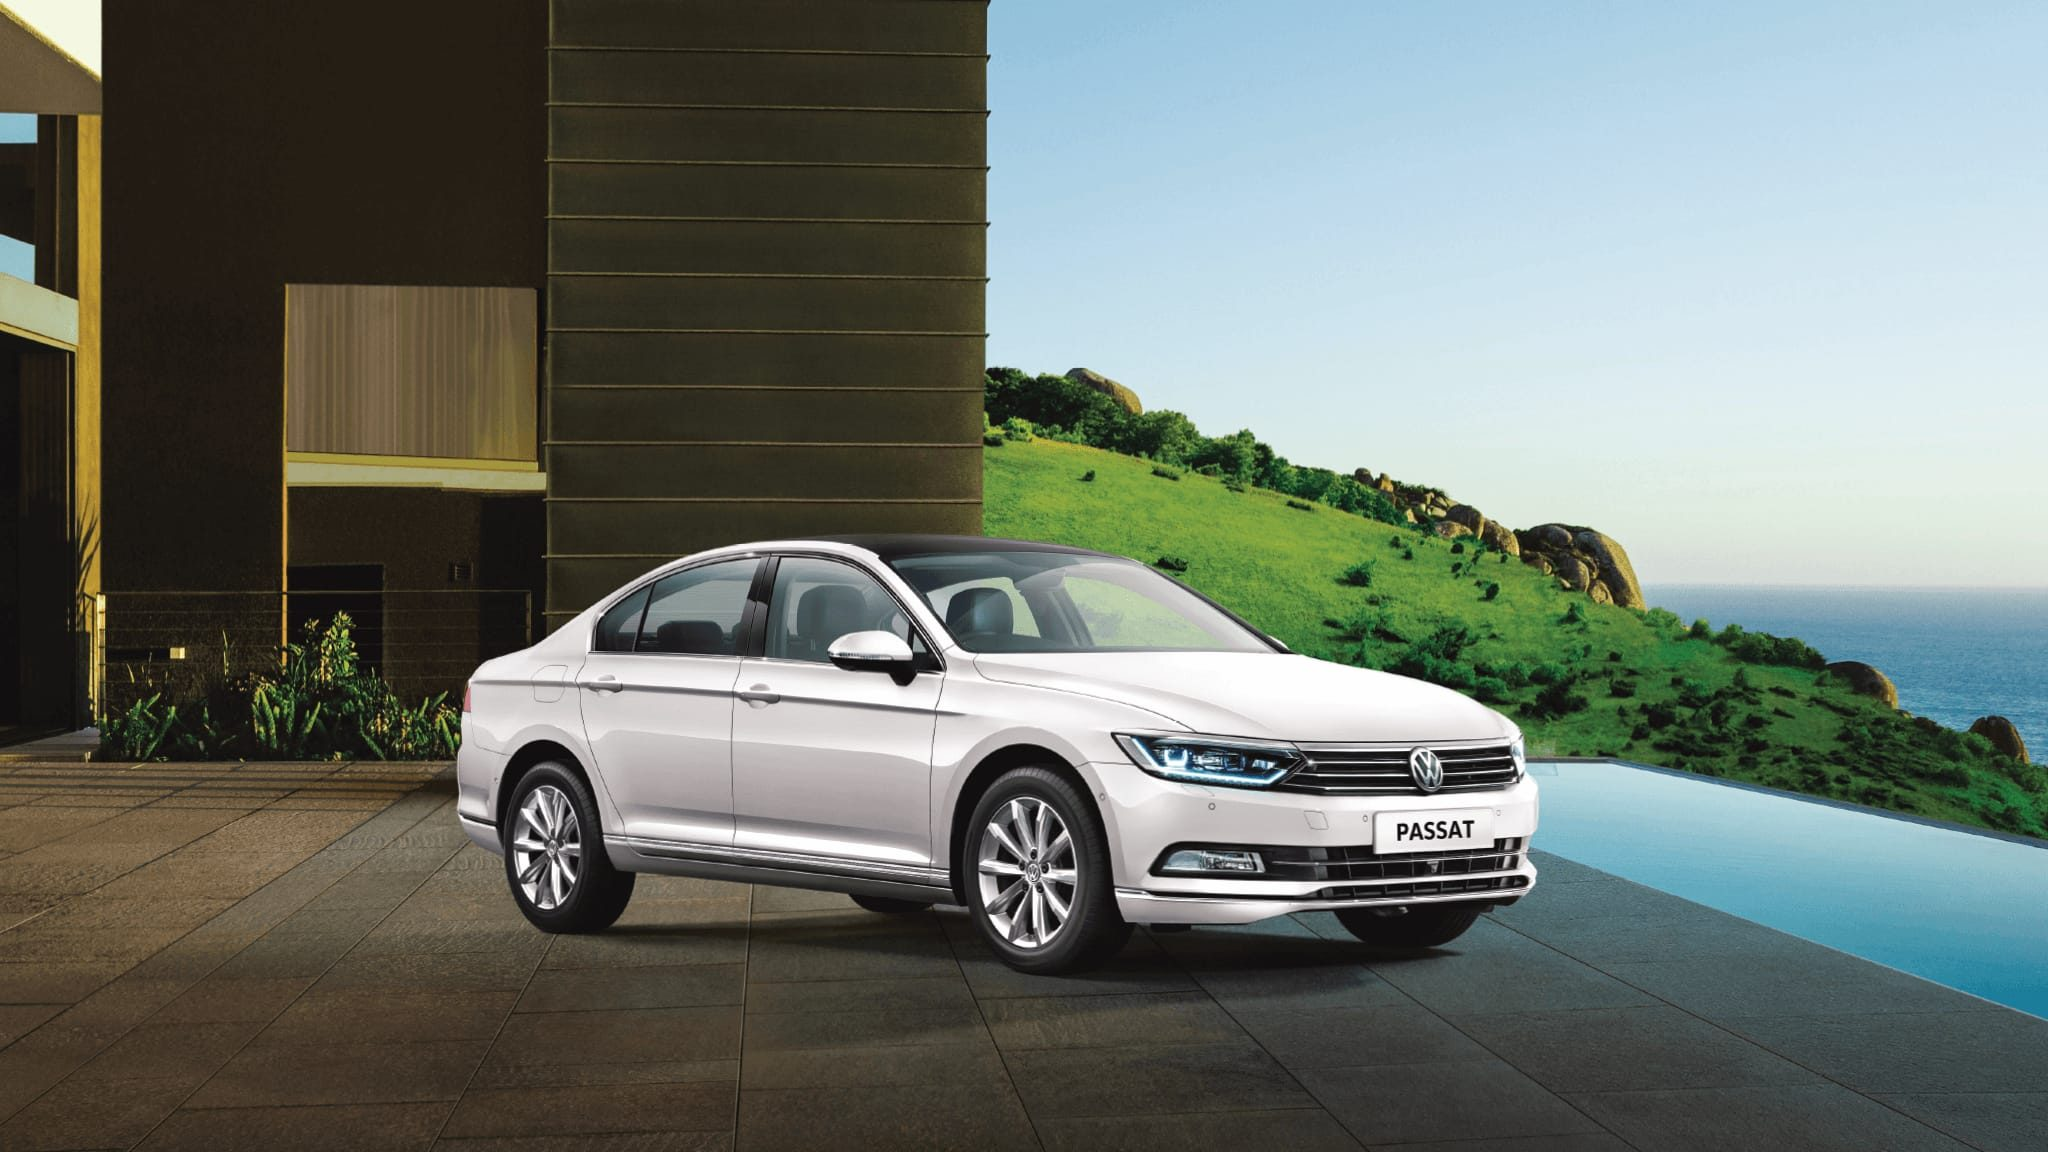 Time to Upgrade to Passat, the new sedan on roads.